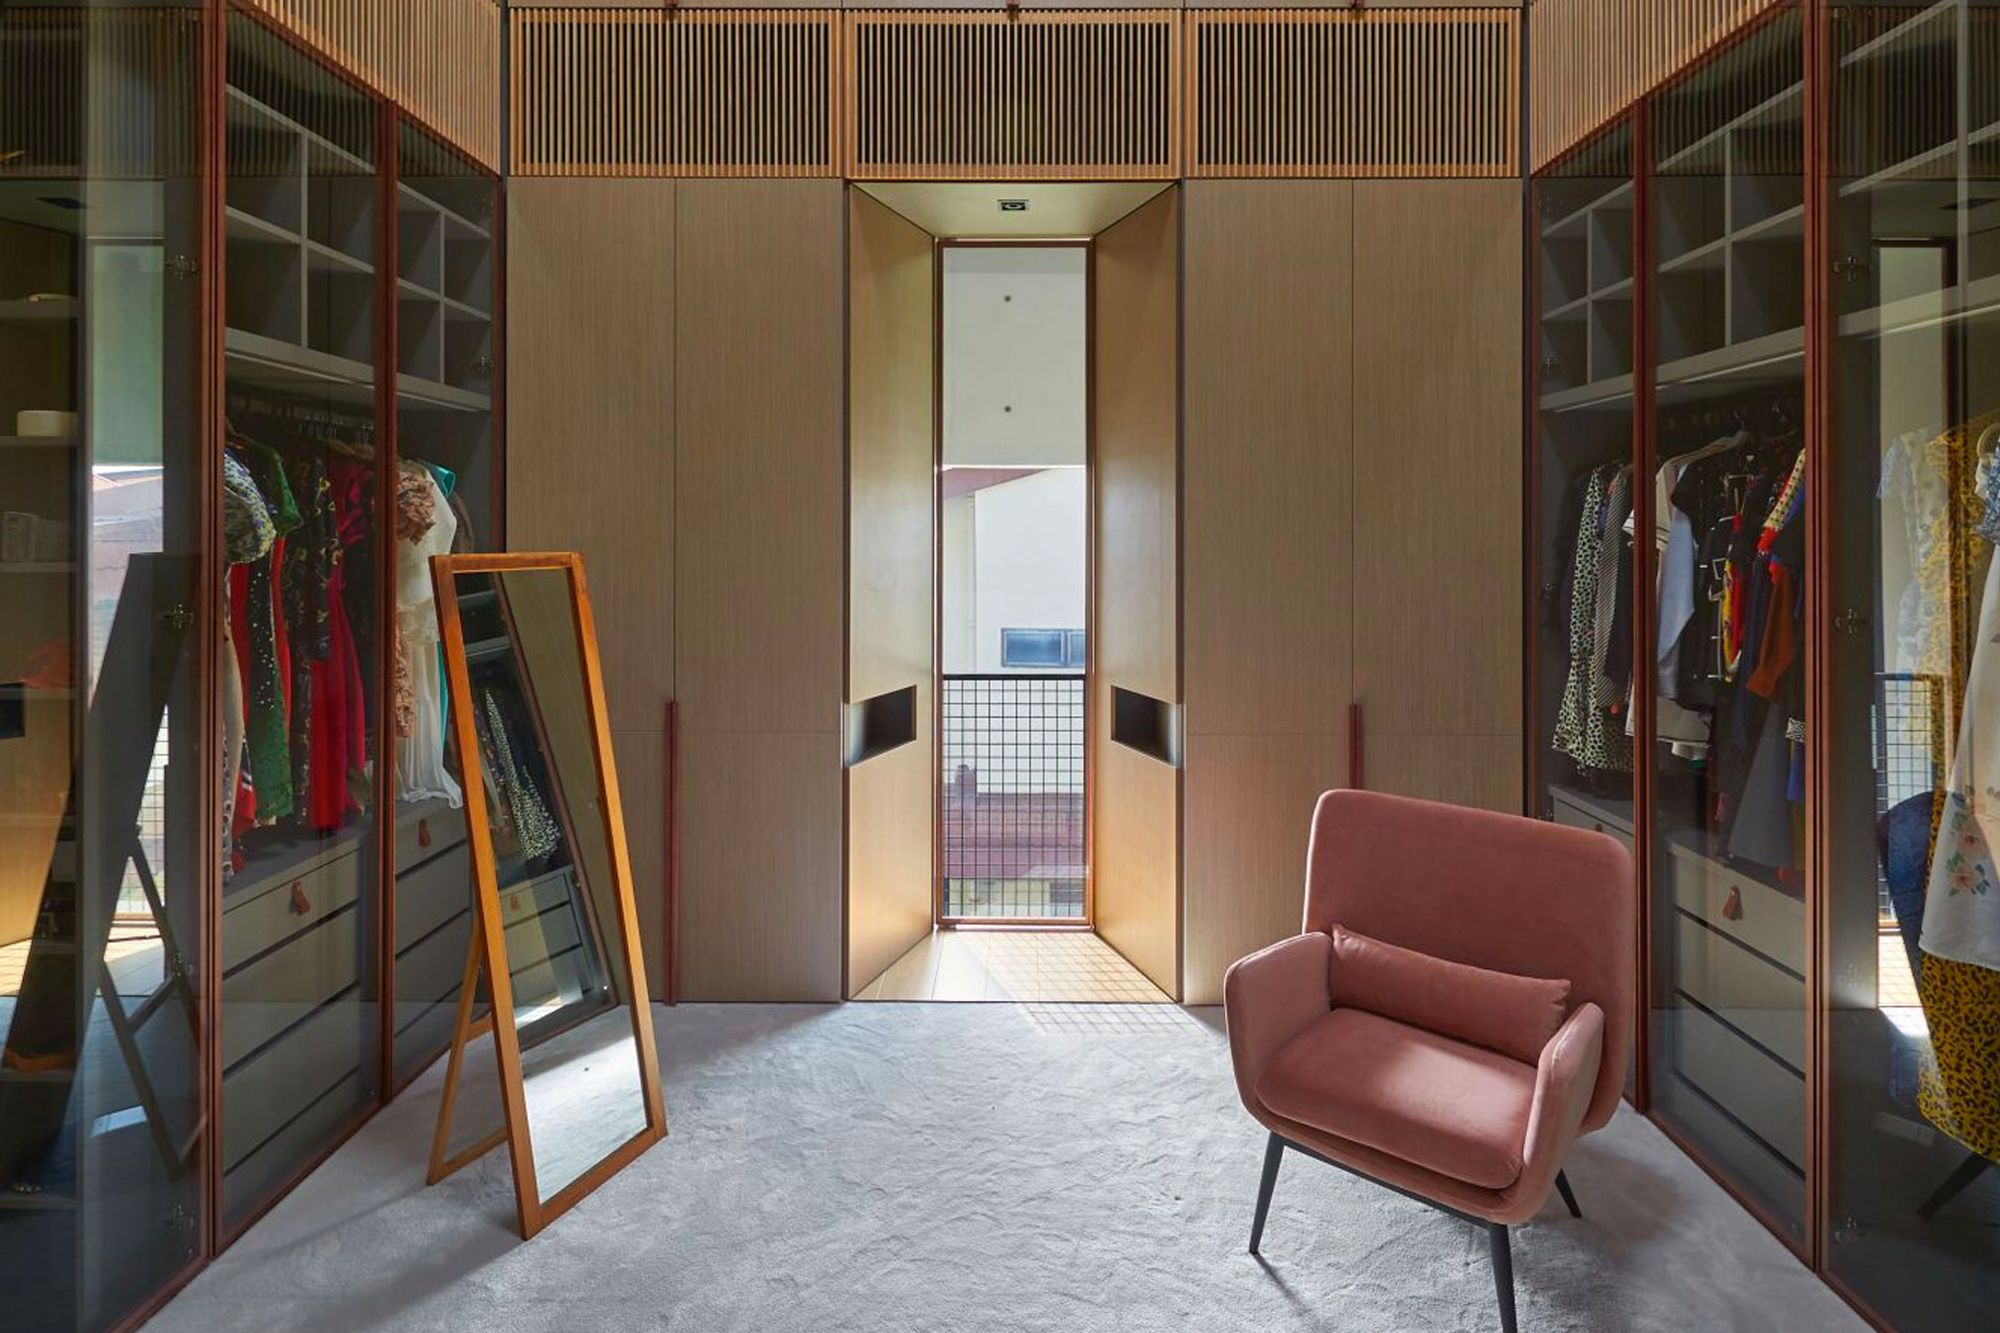 Designed by Rene Tan, co-founder of RT+Q Architects, this walk-in wardrobe features lofty ceilings that create a bright and airy atmosphere